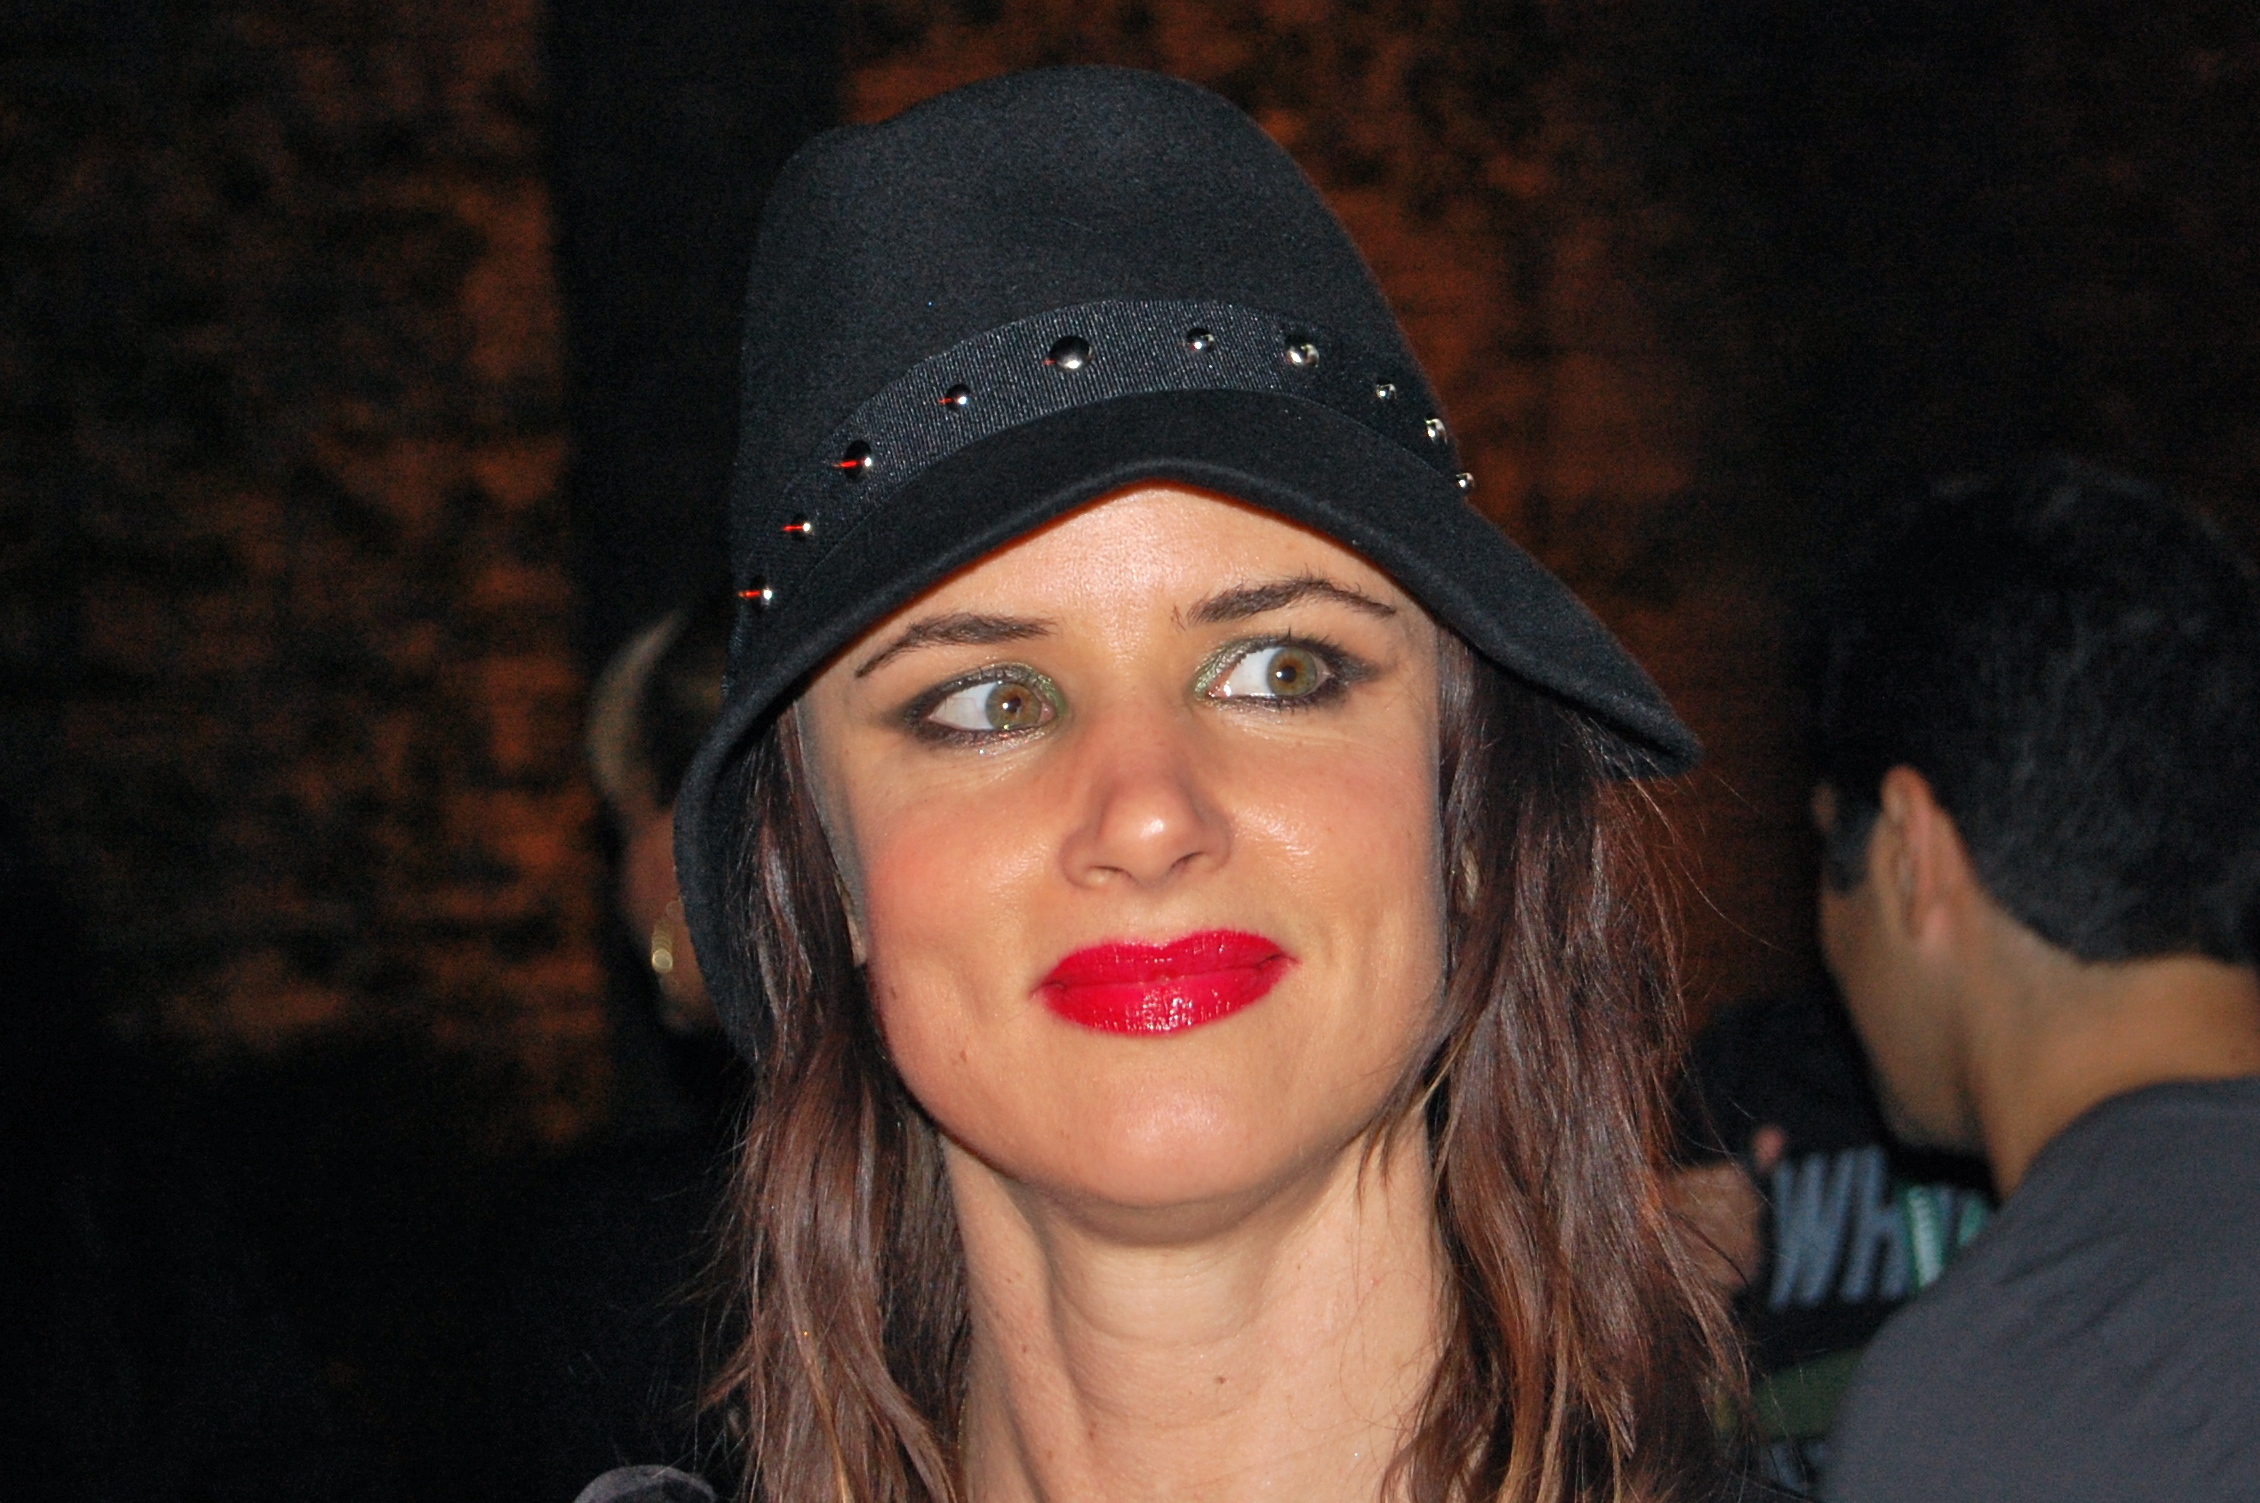 juliette lewis hardly wait lyricsjuliette lewis hardly wait, juliette lewis future deep, juliette lewis wiki, juliette lewis 2016, juliette lewis hardly wait mp3, juliette lewis 2017, juliette lewis hardly wait lyrics, juliette lewis vk, juliette lewis 1989, juliette lewis gilbert grape, juliette lewis live, juliette lewis terra incognita, juliette lewis stickup, juliette lewis itunes, juliette lewis got love to kill, juliette lewis i know trouble, juliette lewis gta, juliette lewis fantasy bar, juliette lewis born bad, juliette lewis songs